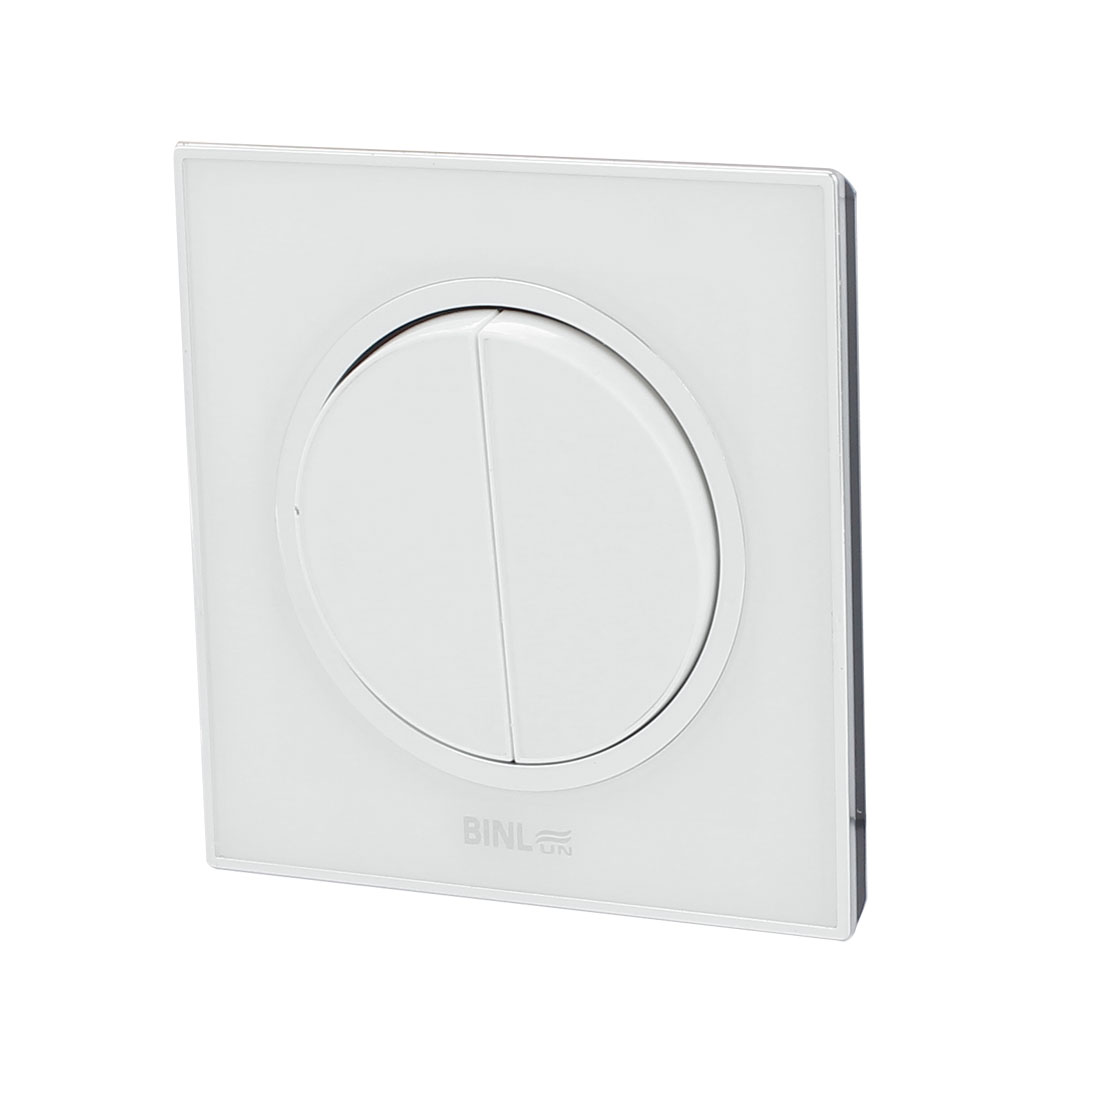 AC 220V 10A White PMMA 2 Gang 2 Way On/Off Wall Mounted Switch Control 86x86mm